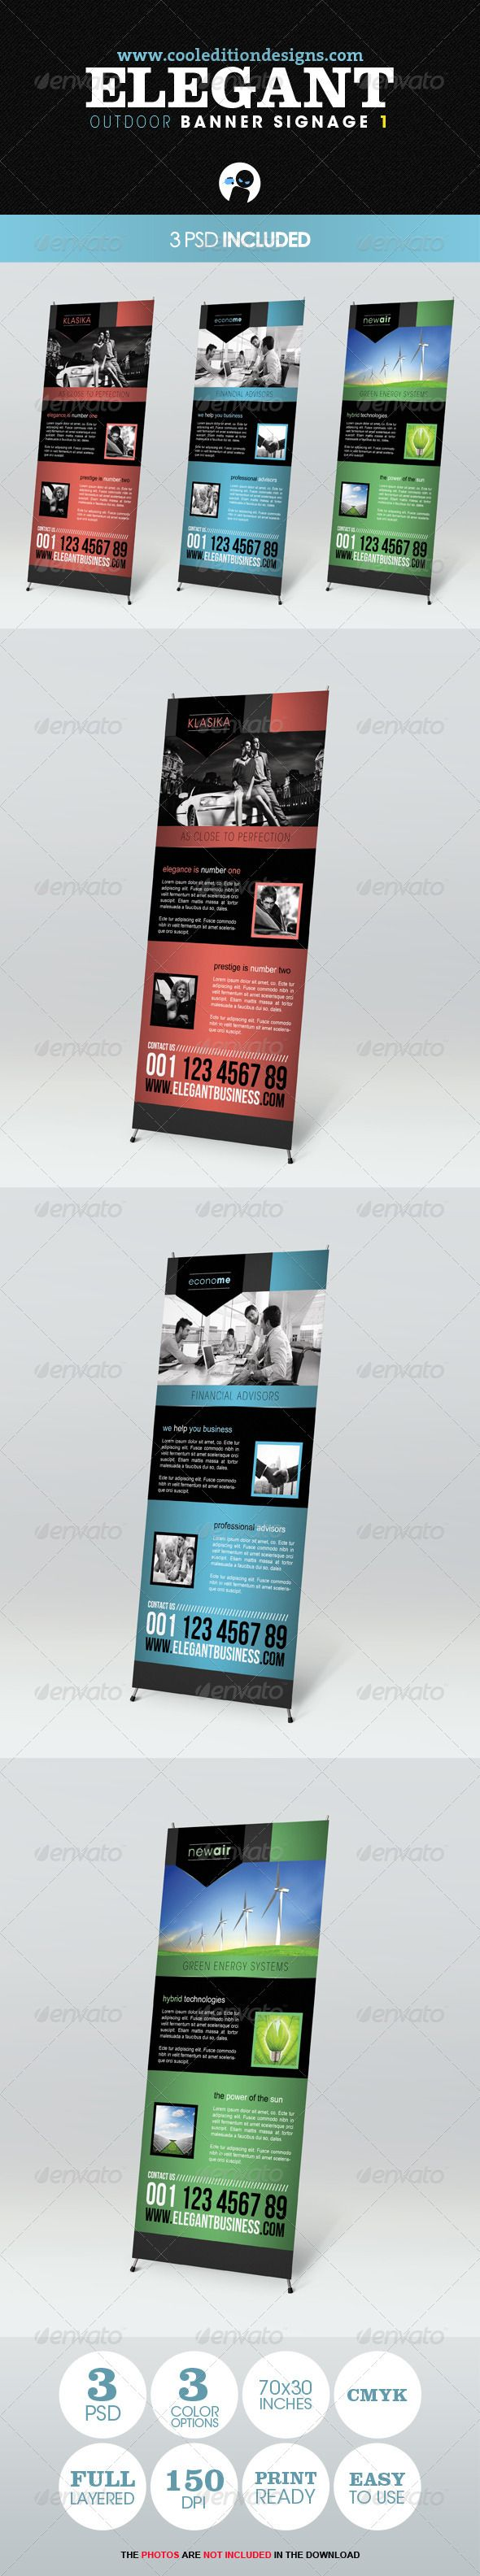 Elegant Outdoor Banner Signage 1 — Photoshop PSD #finances #cars • Available...